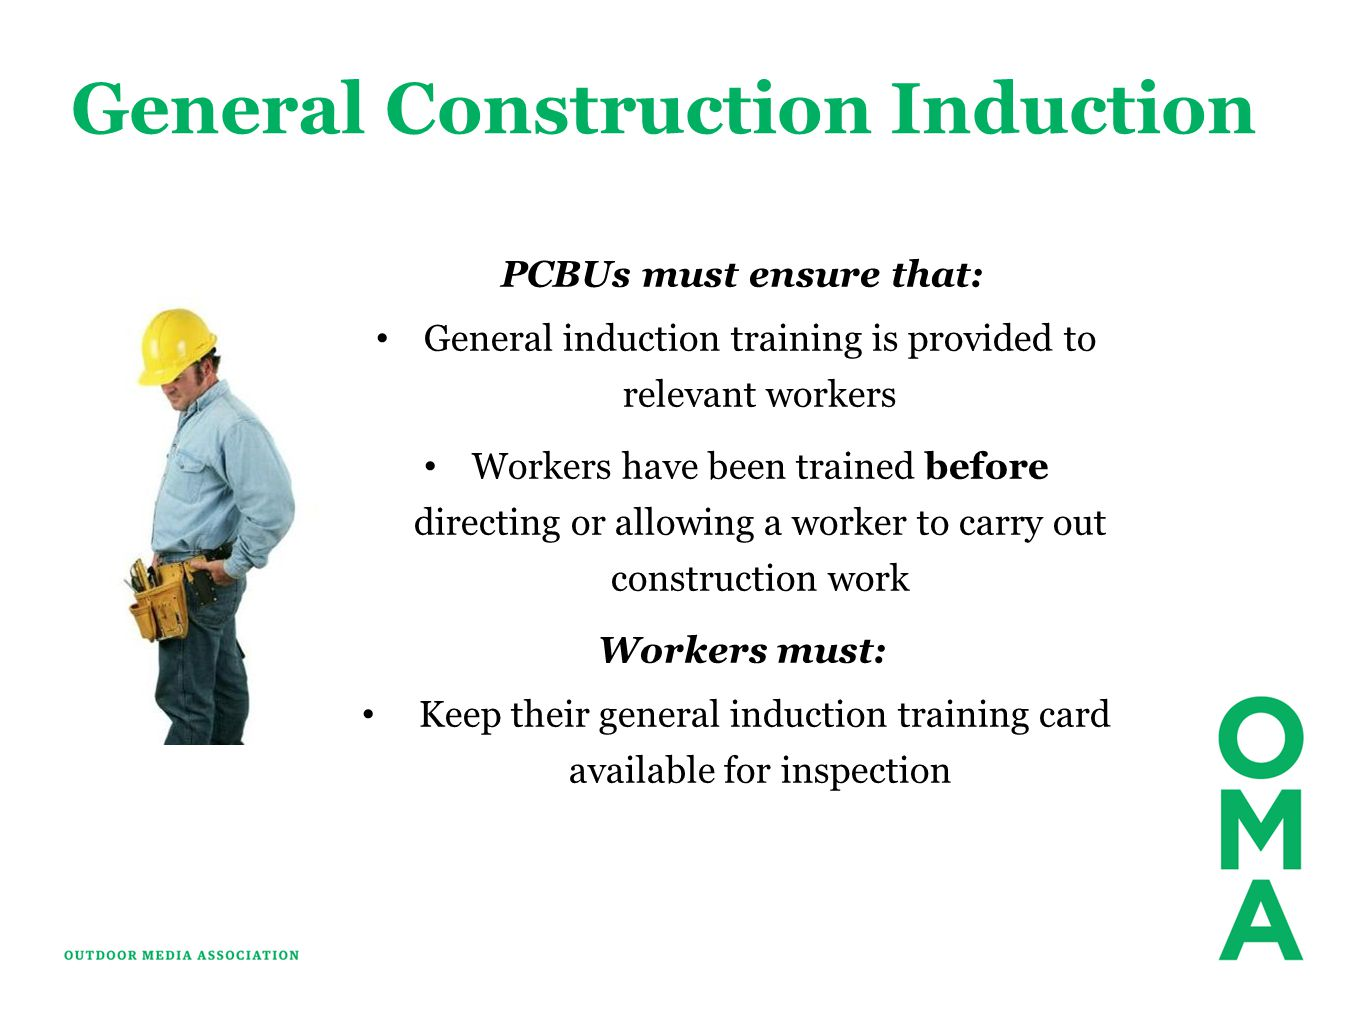 General Construction Induction PCBUs must ensure that: